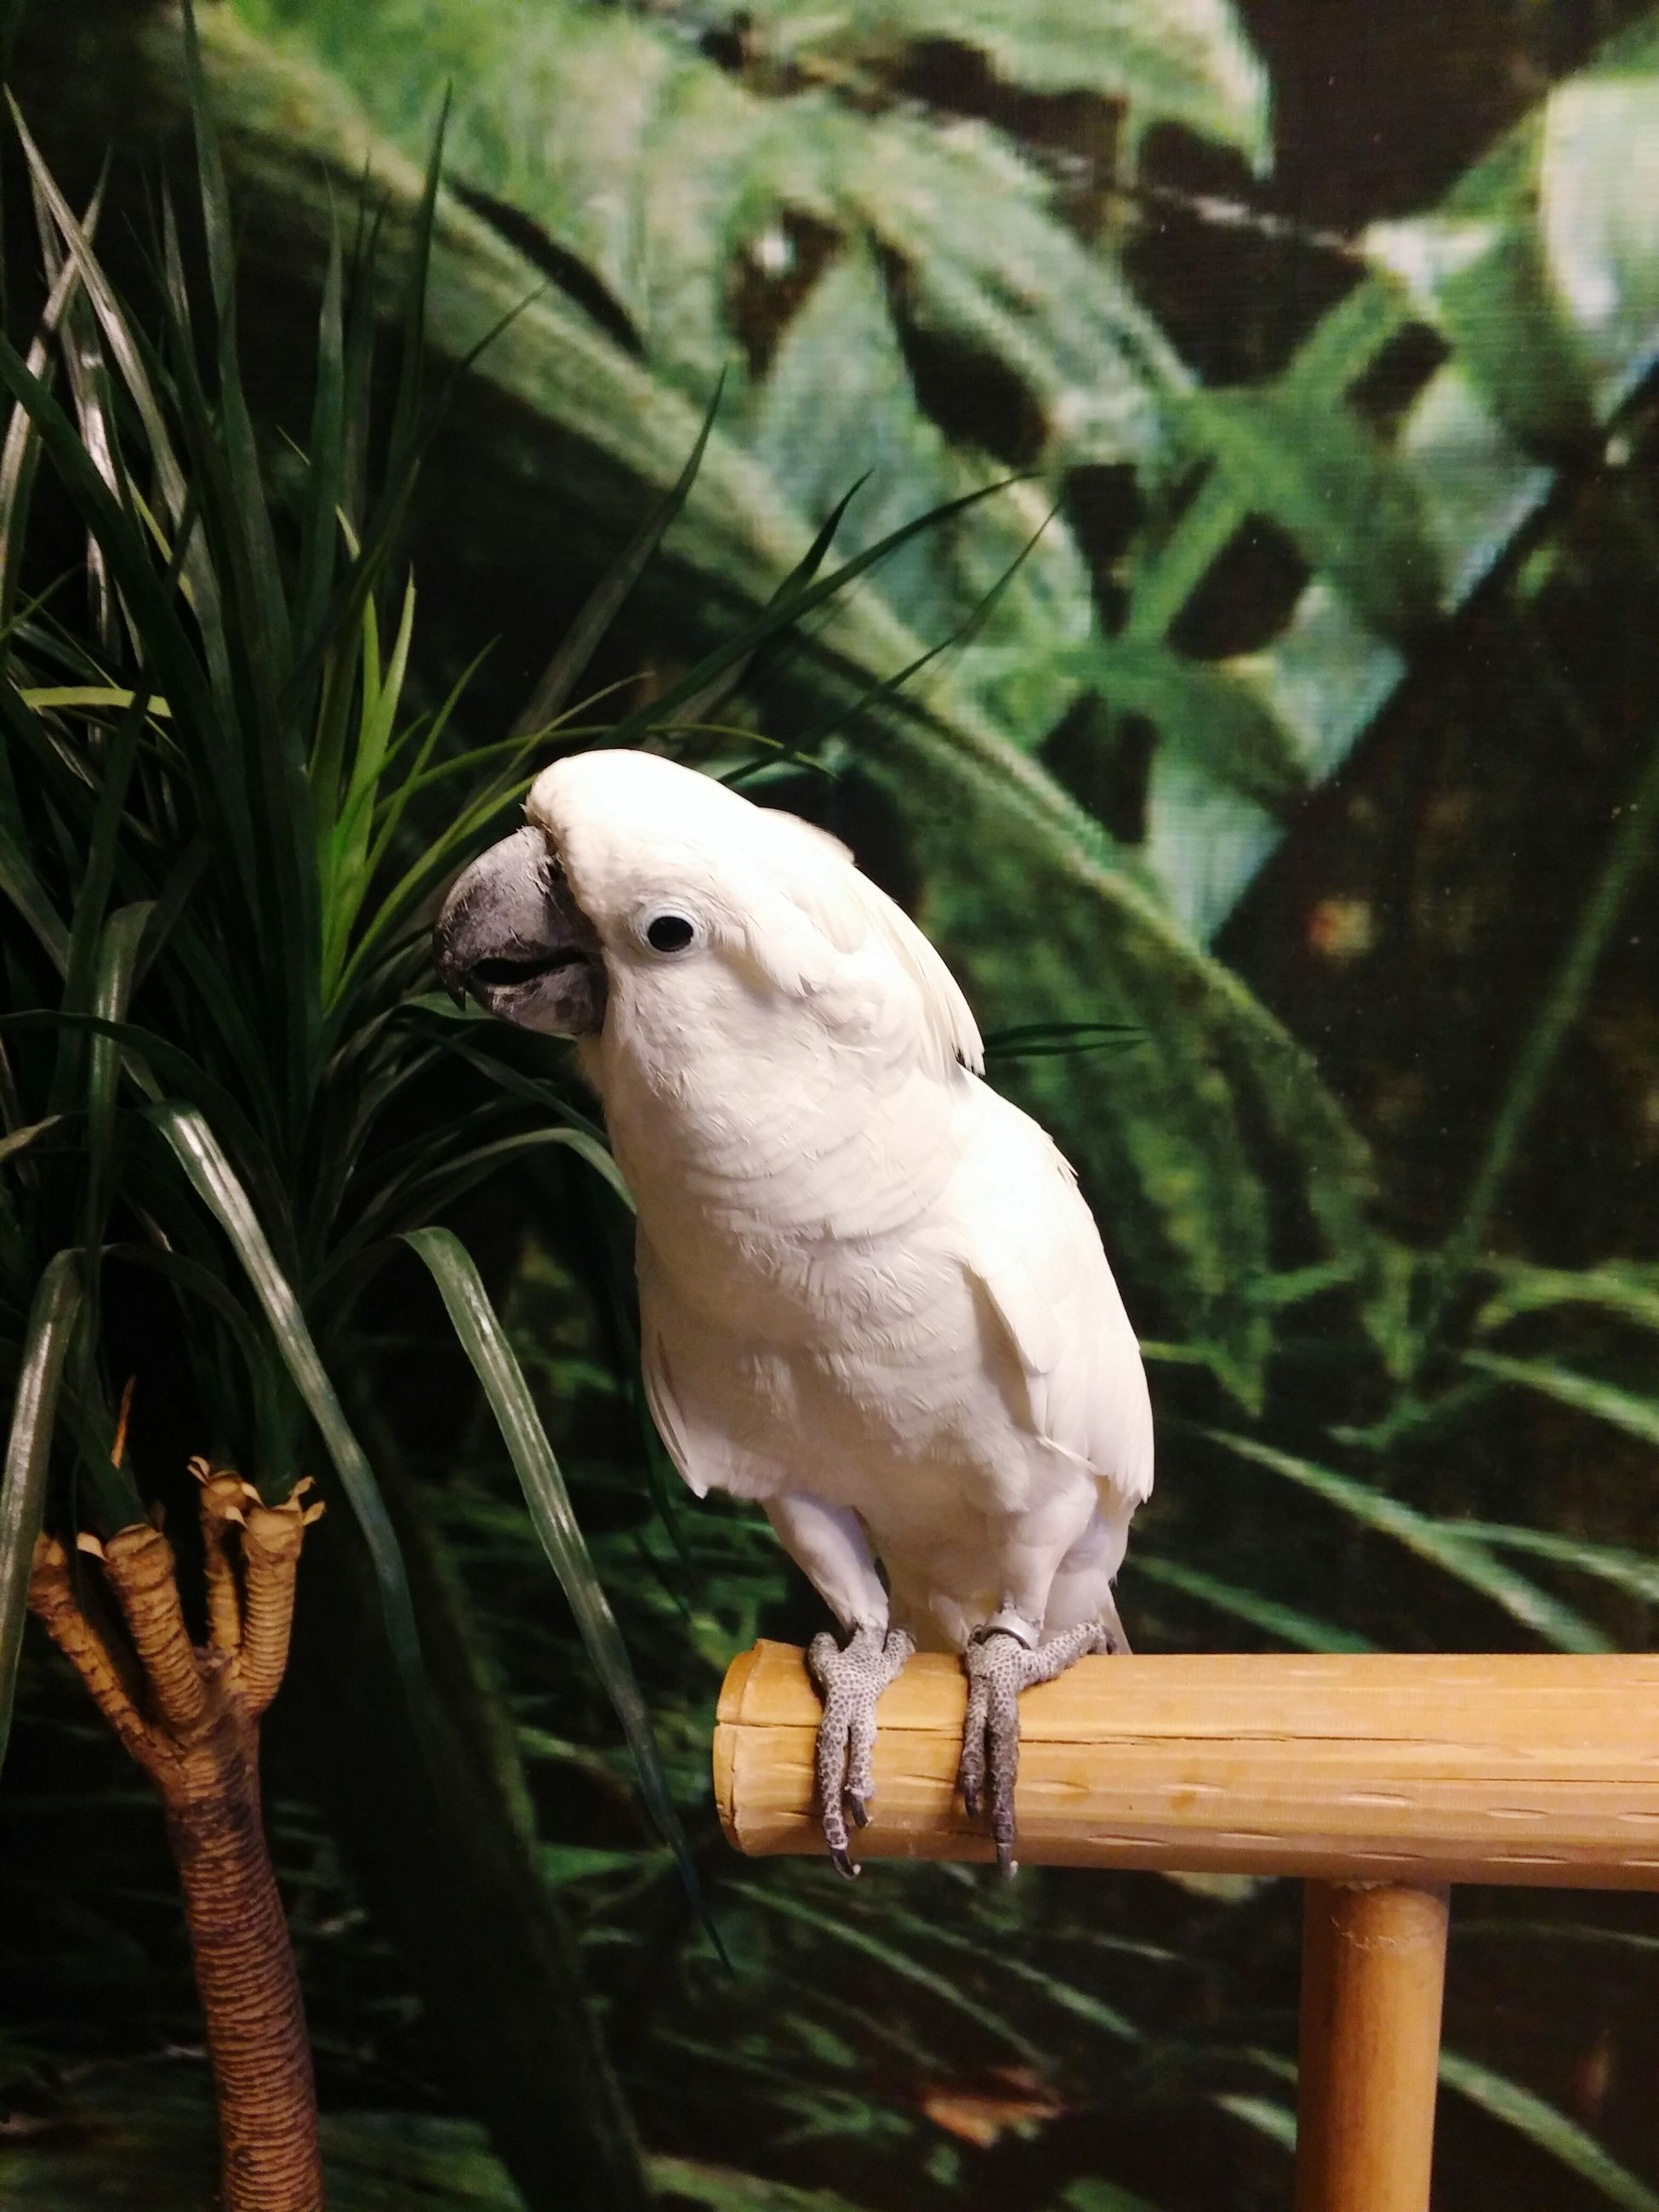 animal themes, one animal, animals in the wild, wildlife, bird, focus on foreground, perching, close-up, beak, side view, animal head, nature, looking away, full length, parrot, outdoors, zoology, vertebrate, no people, day